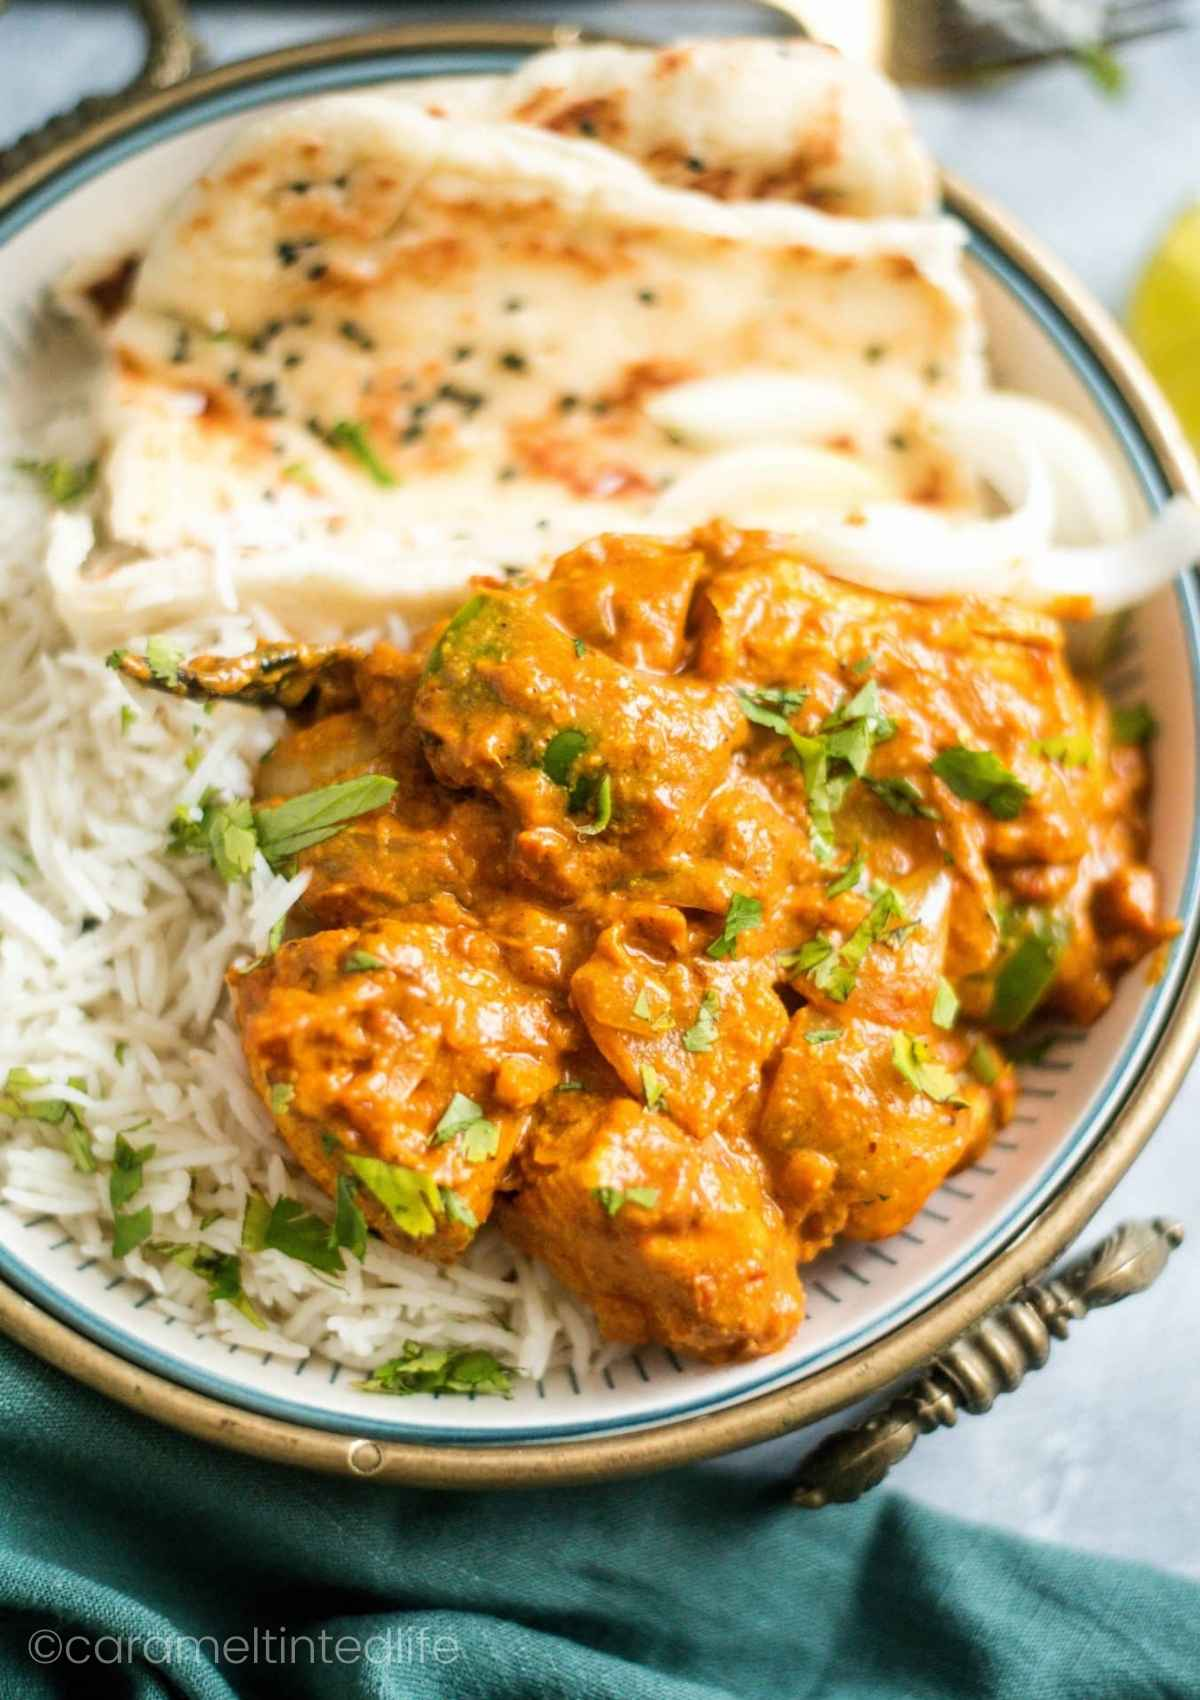 Kadai Chicken in a plate served with rice and naan